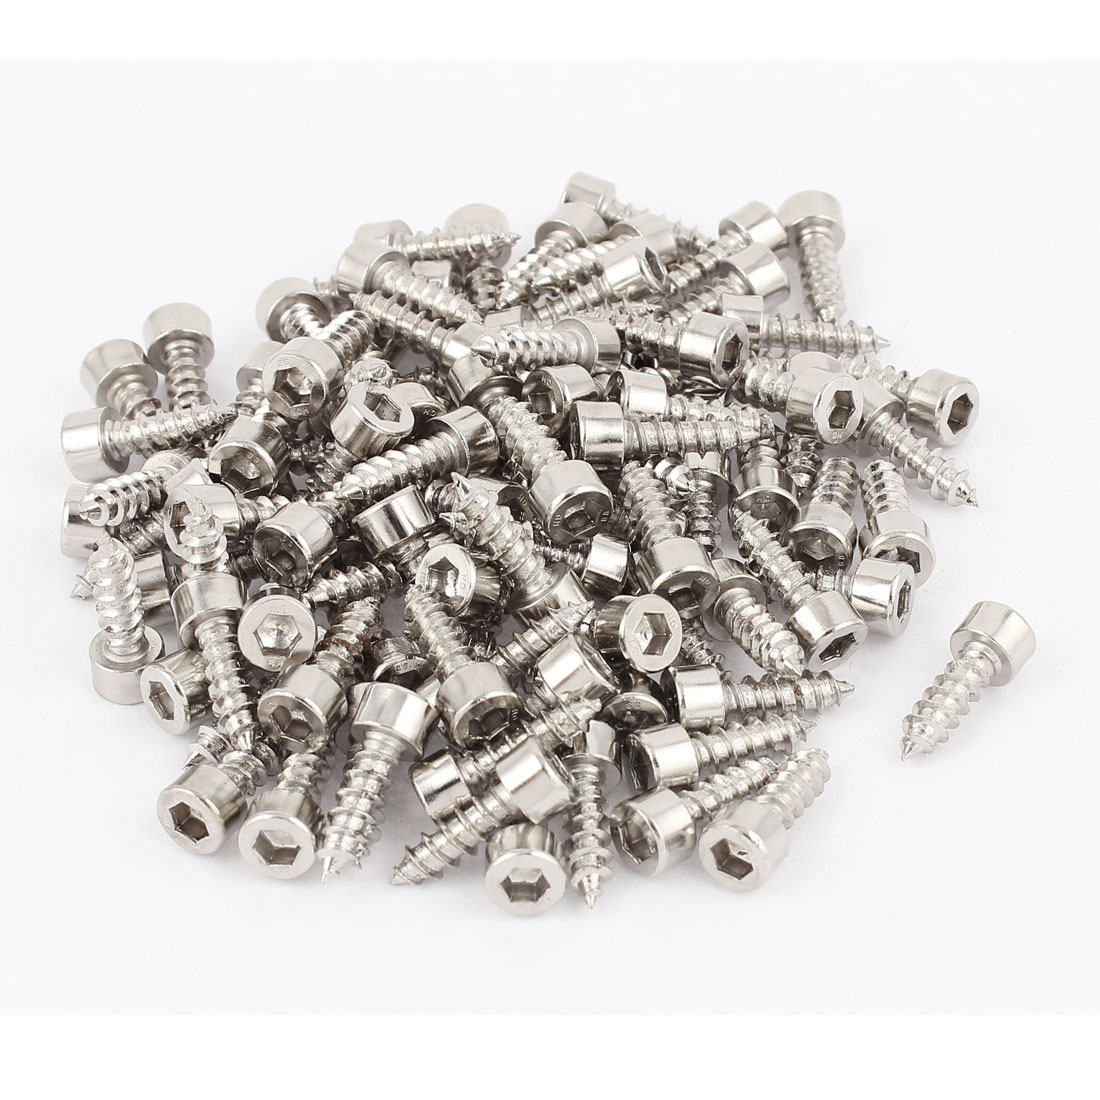 5mm x 16mm Threaded Nickel Plated Hex Head Self Tapping Screws 100pcs